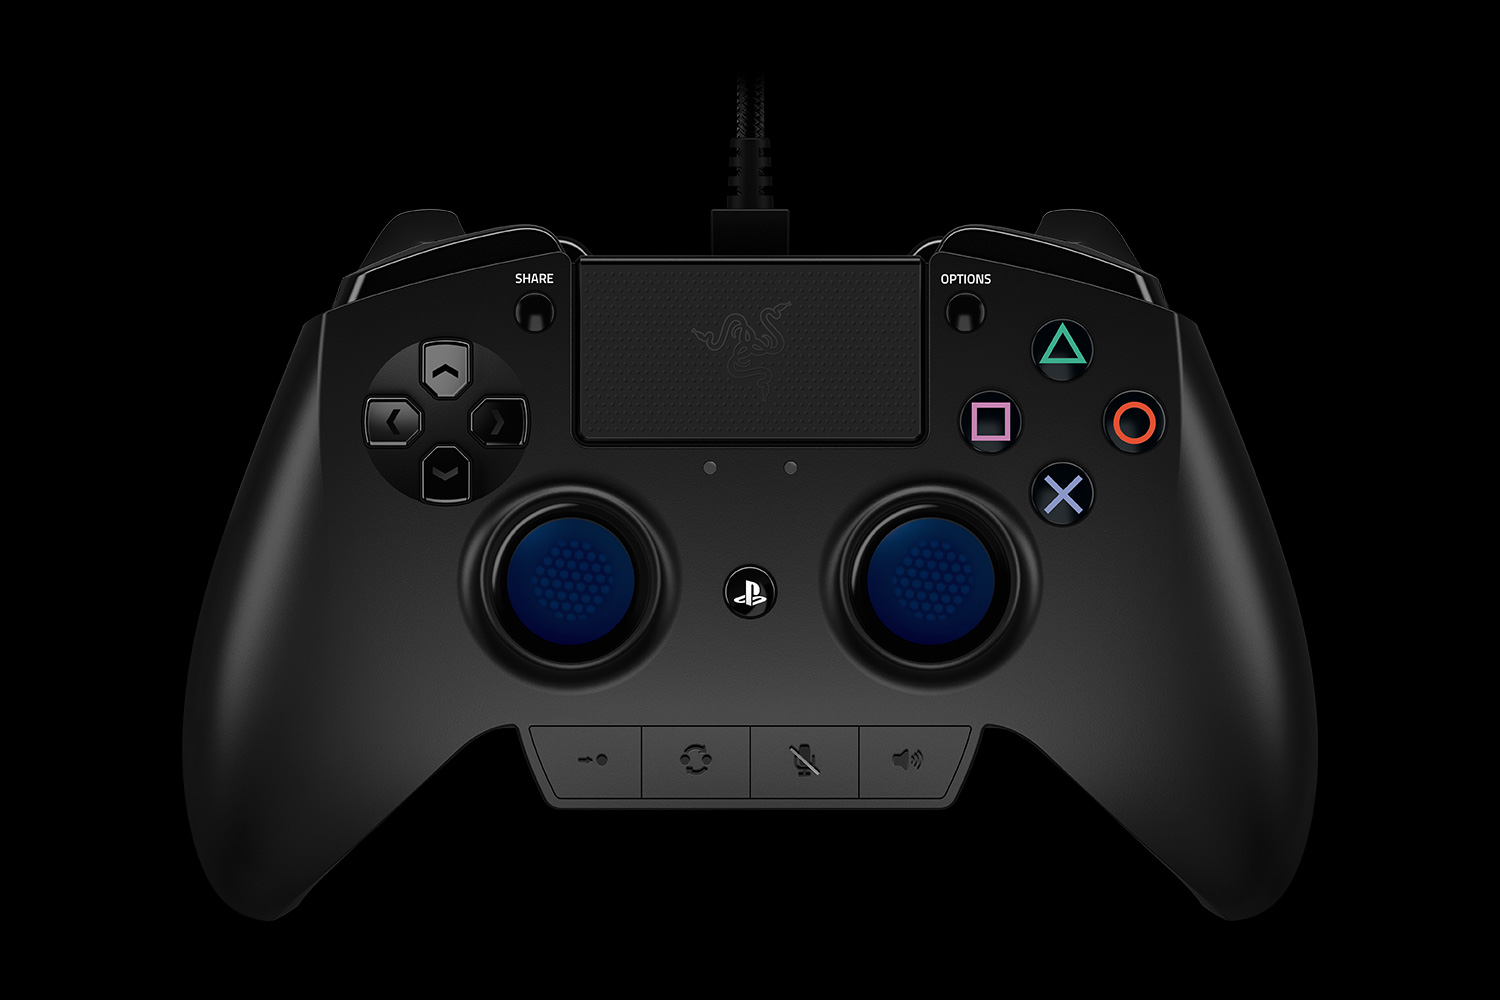 Game Controllers For Ps4 : Razer raiju gaming controller for ps